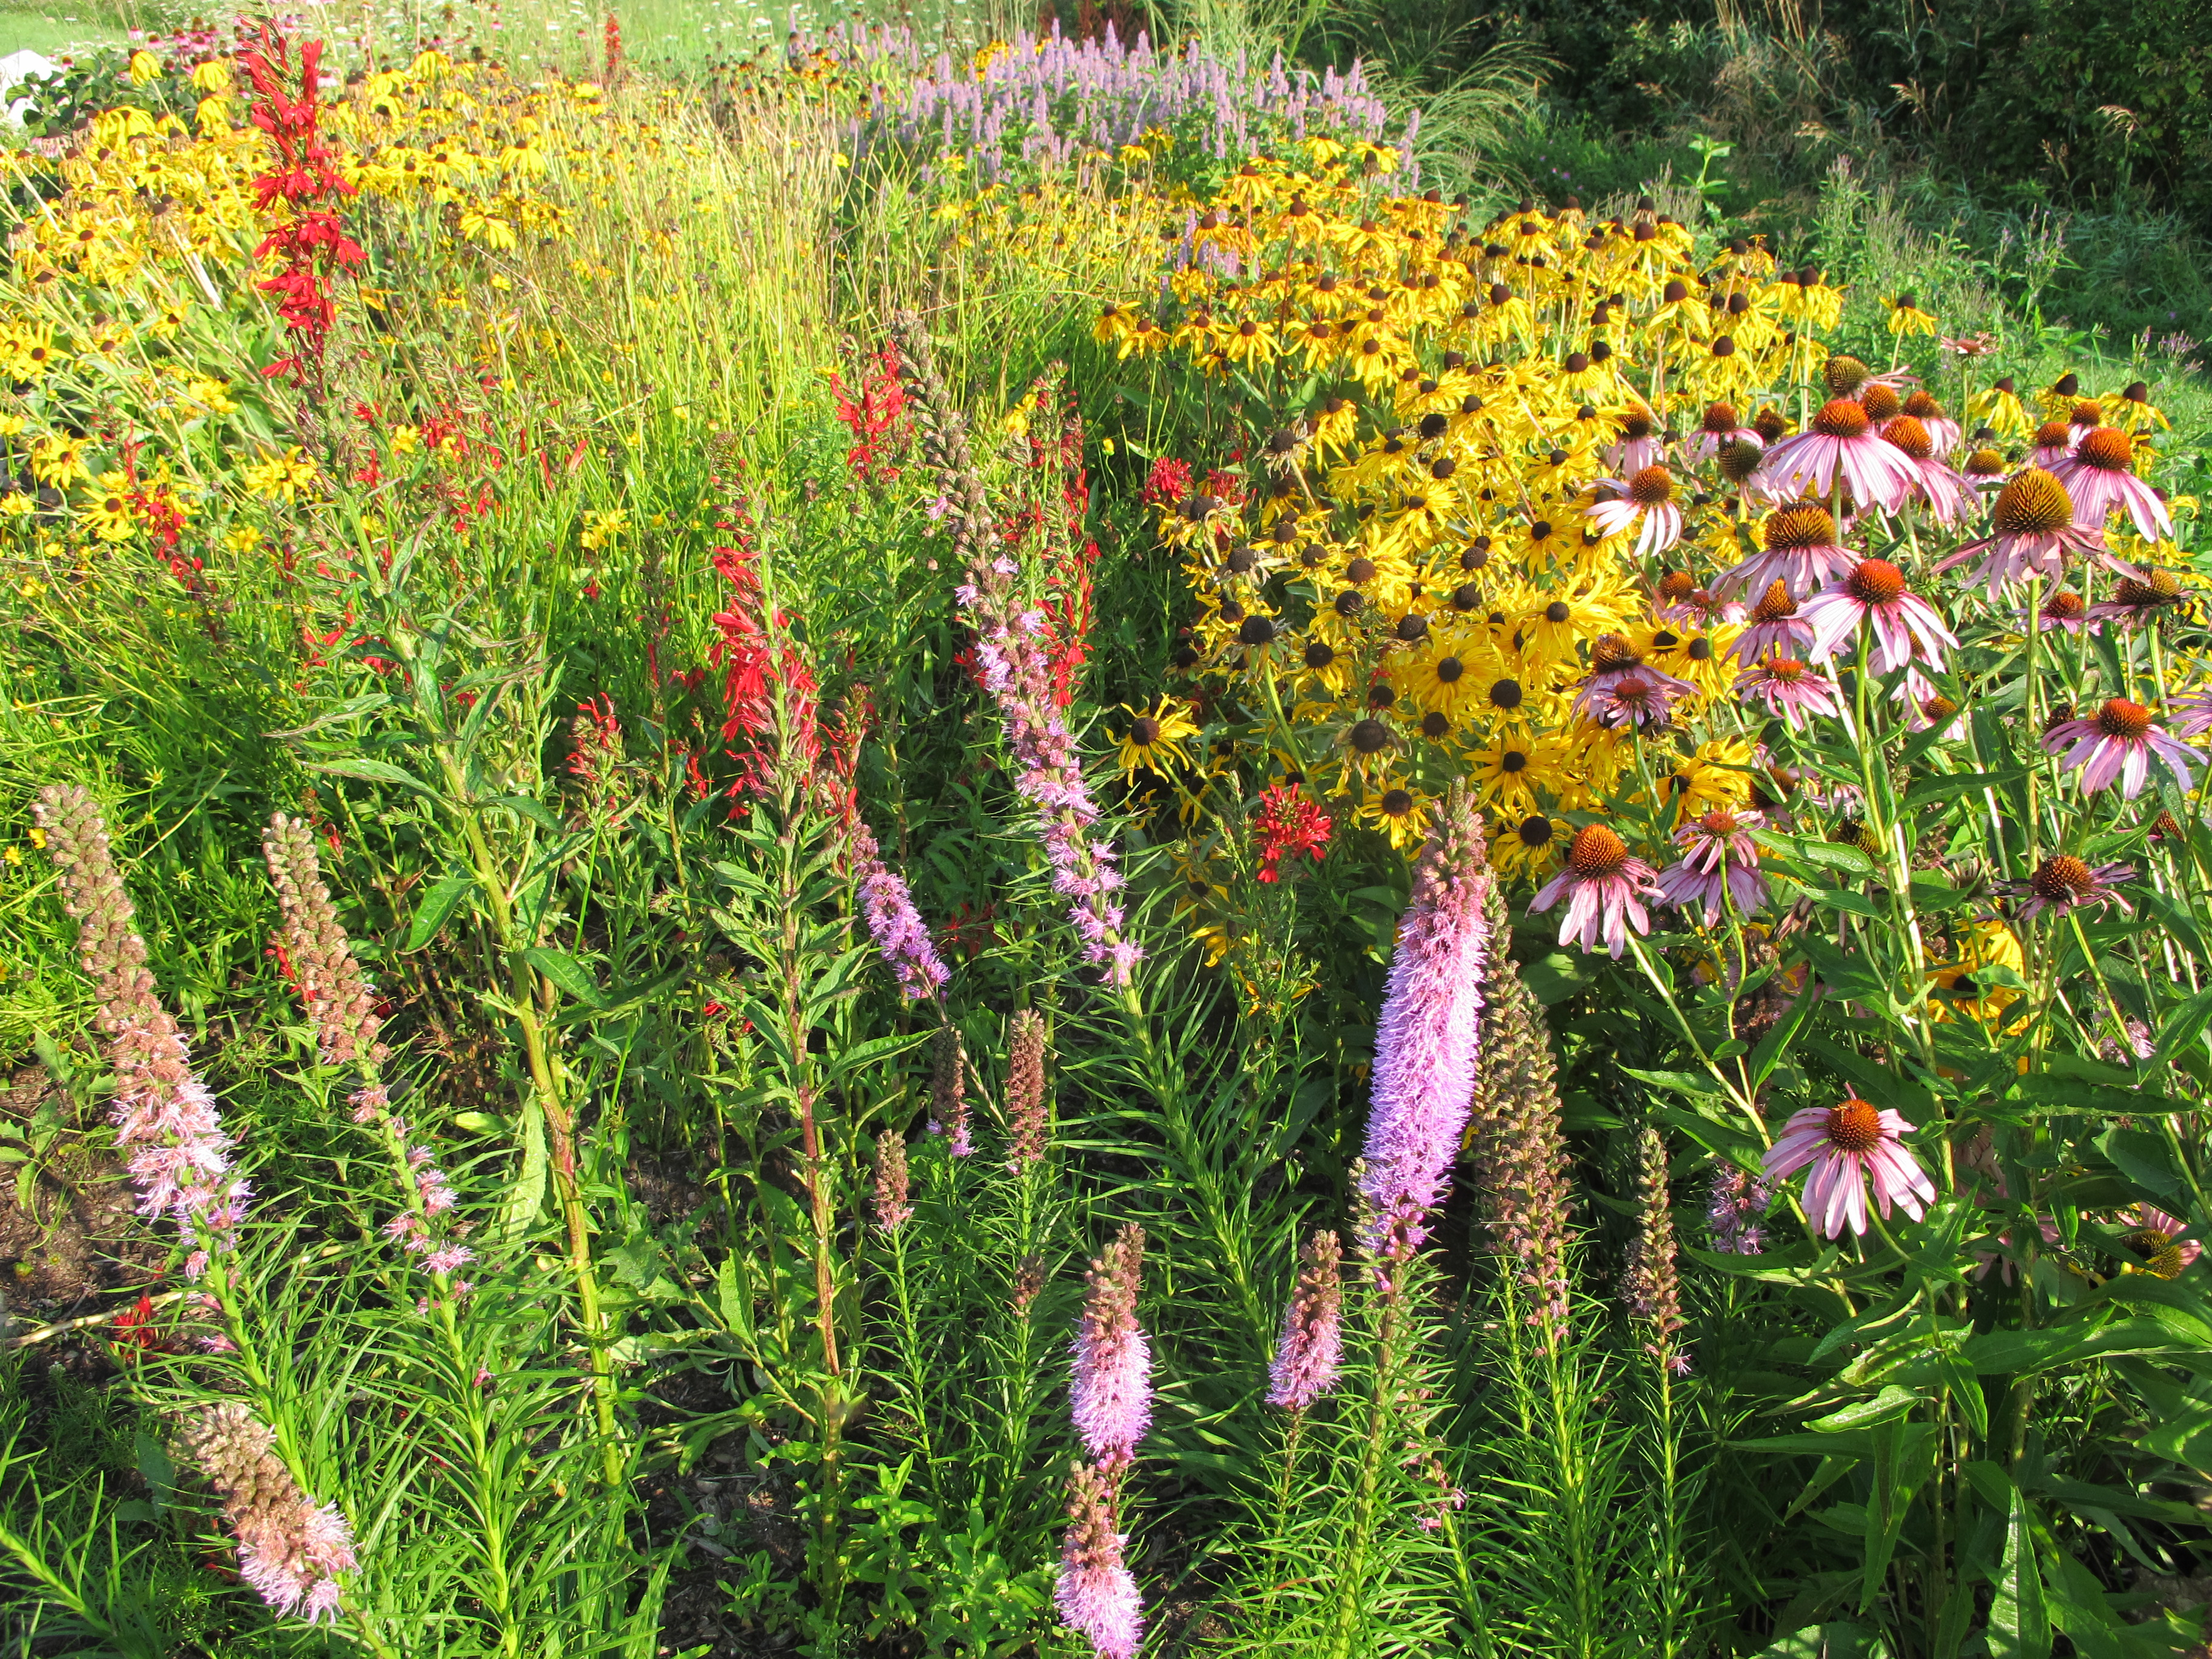 a mix of red, yellow, pink and purple flowers